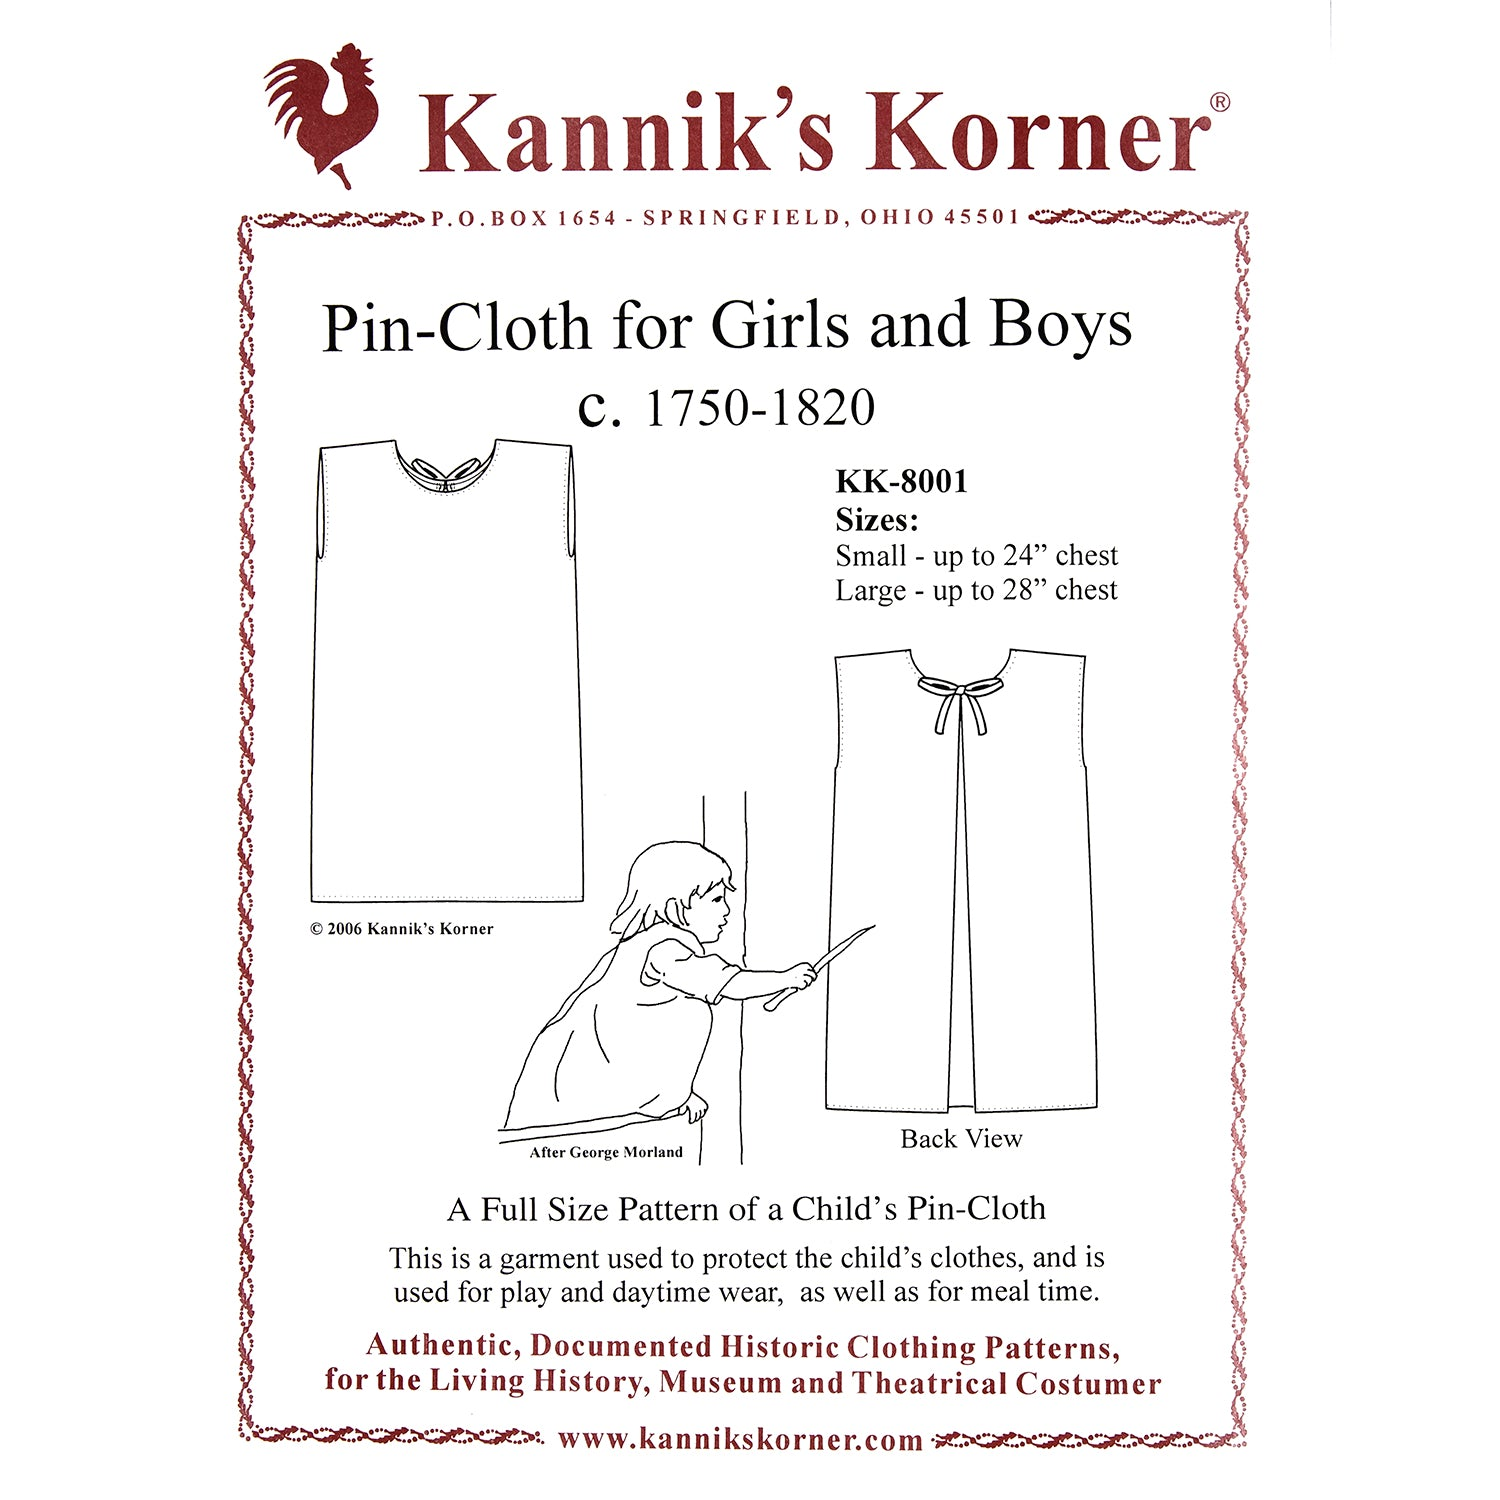 Kannik's Korner Pin Cloth for Girls & Boys 1750-1820